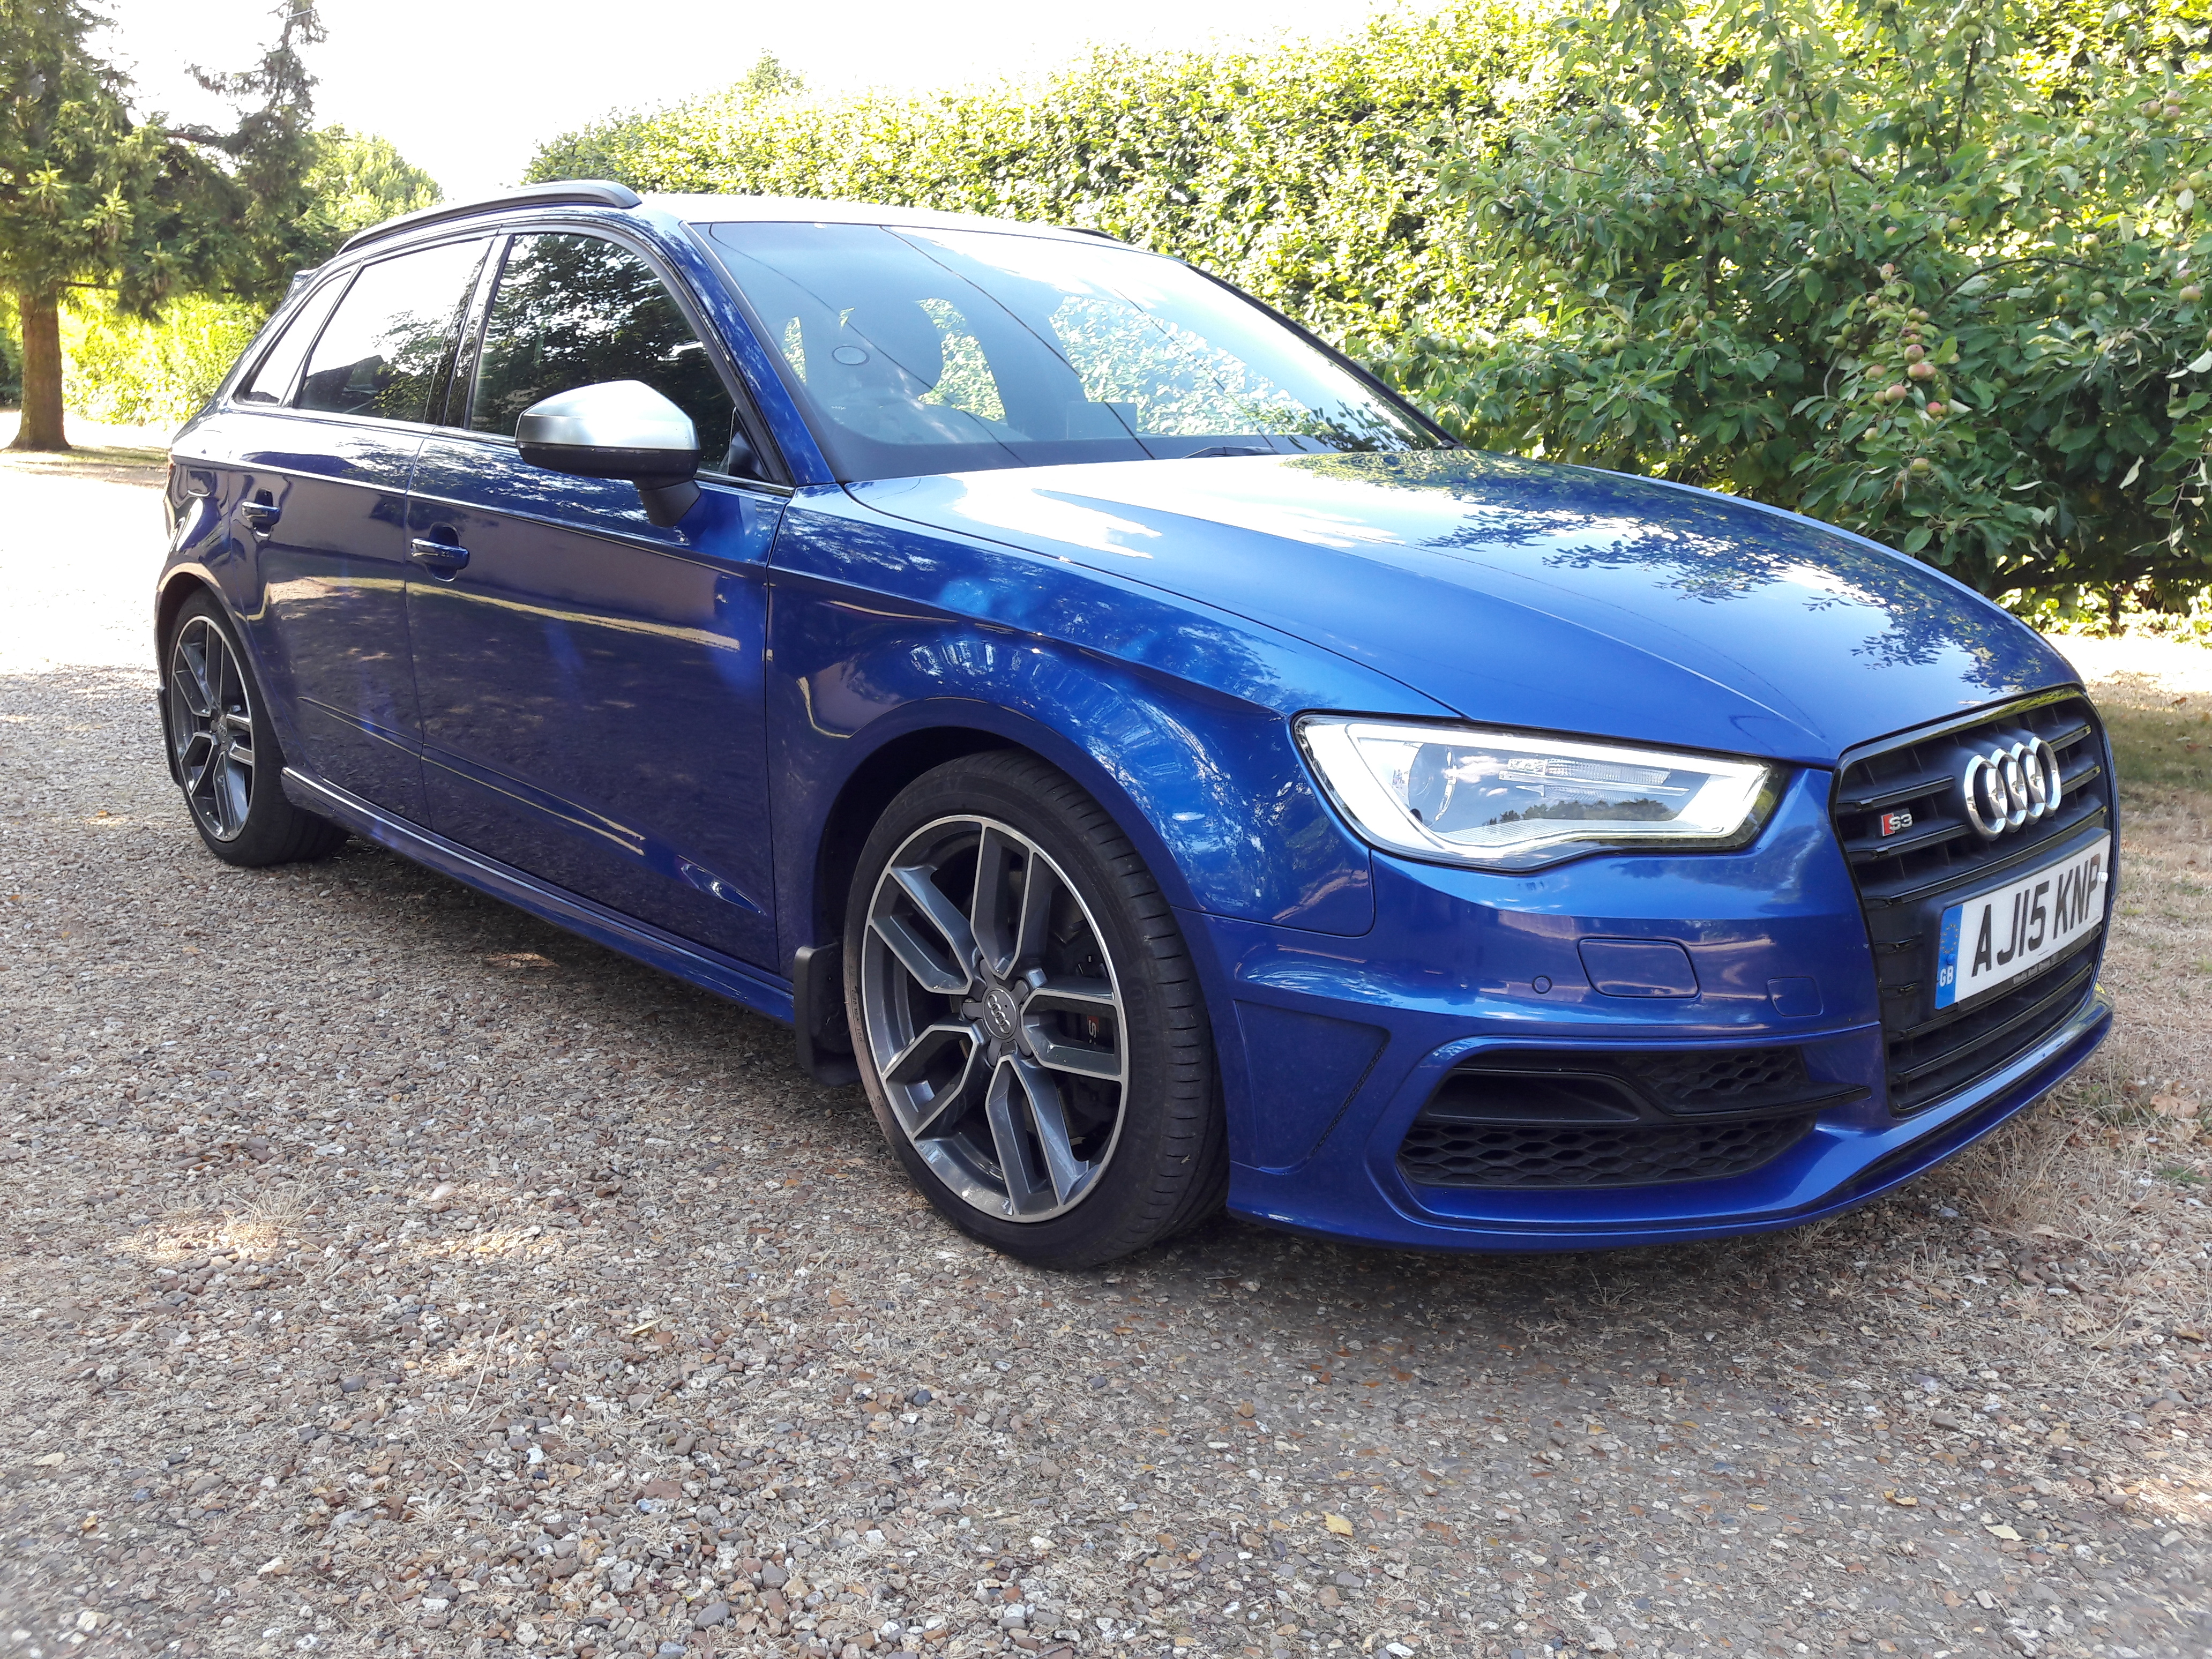 Audi S3 2.0 TFSI 296bhp Quattro Sportback June 2015 6 speed manual 1 owner FASH £20495